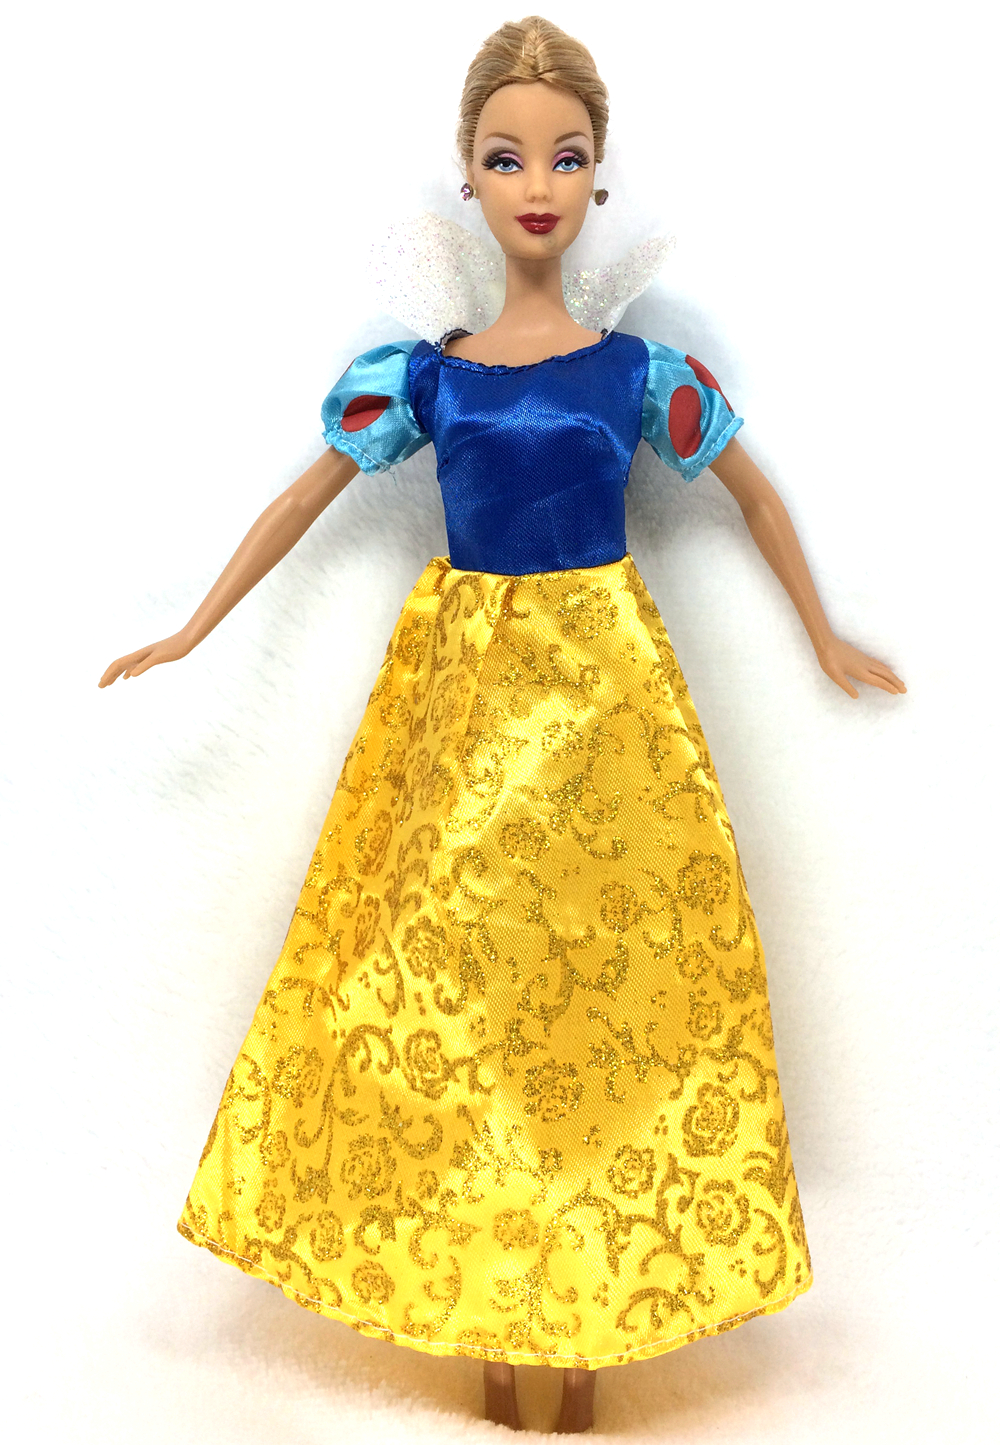 NK One Set Princess Doll Dress Similar Fairy Tale Snow white Wedding Dress  Gown Party Outfit For Barbie Doll Best Girls' Gift светильники trousselier абажур princess fairy 34х22 см